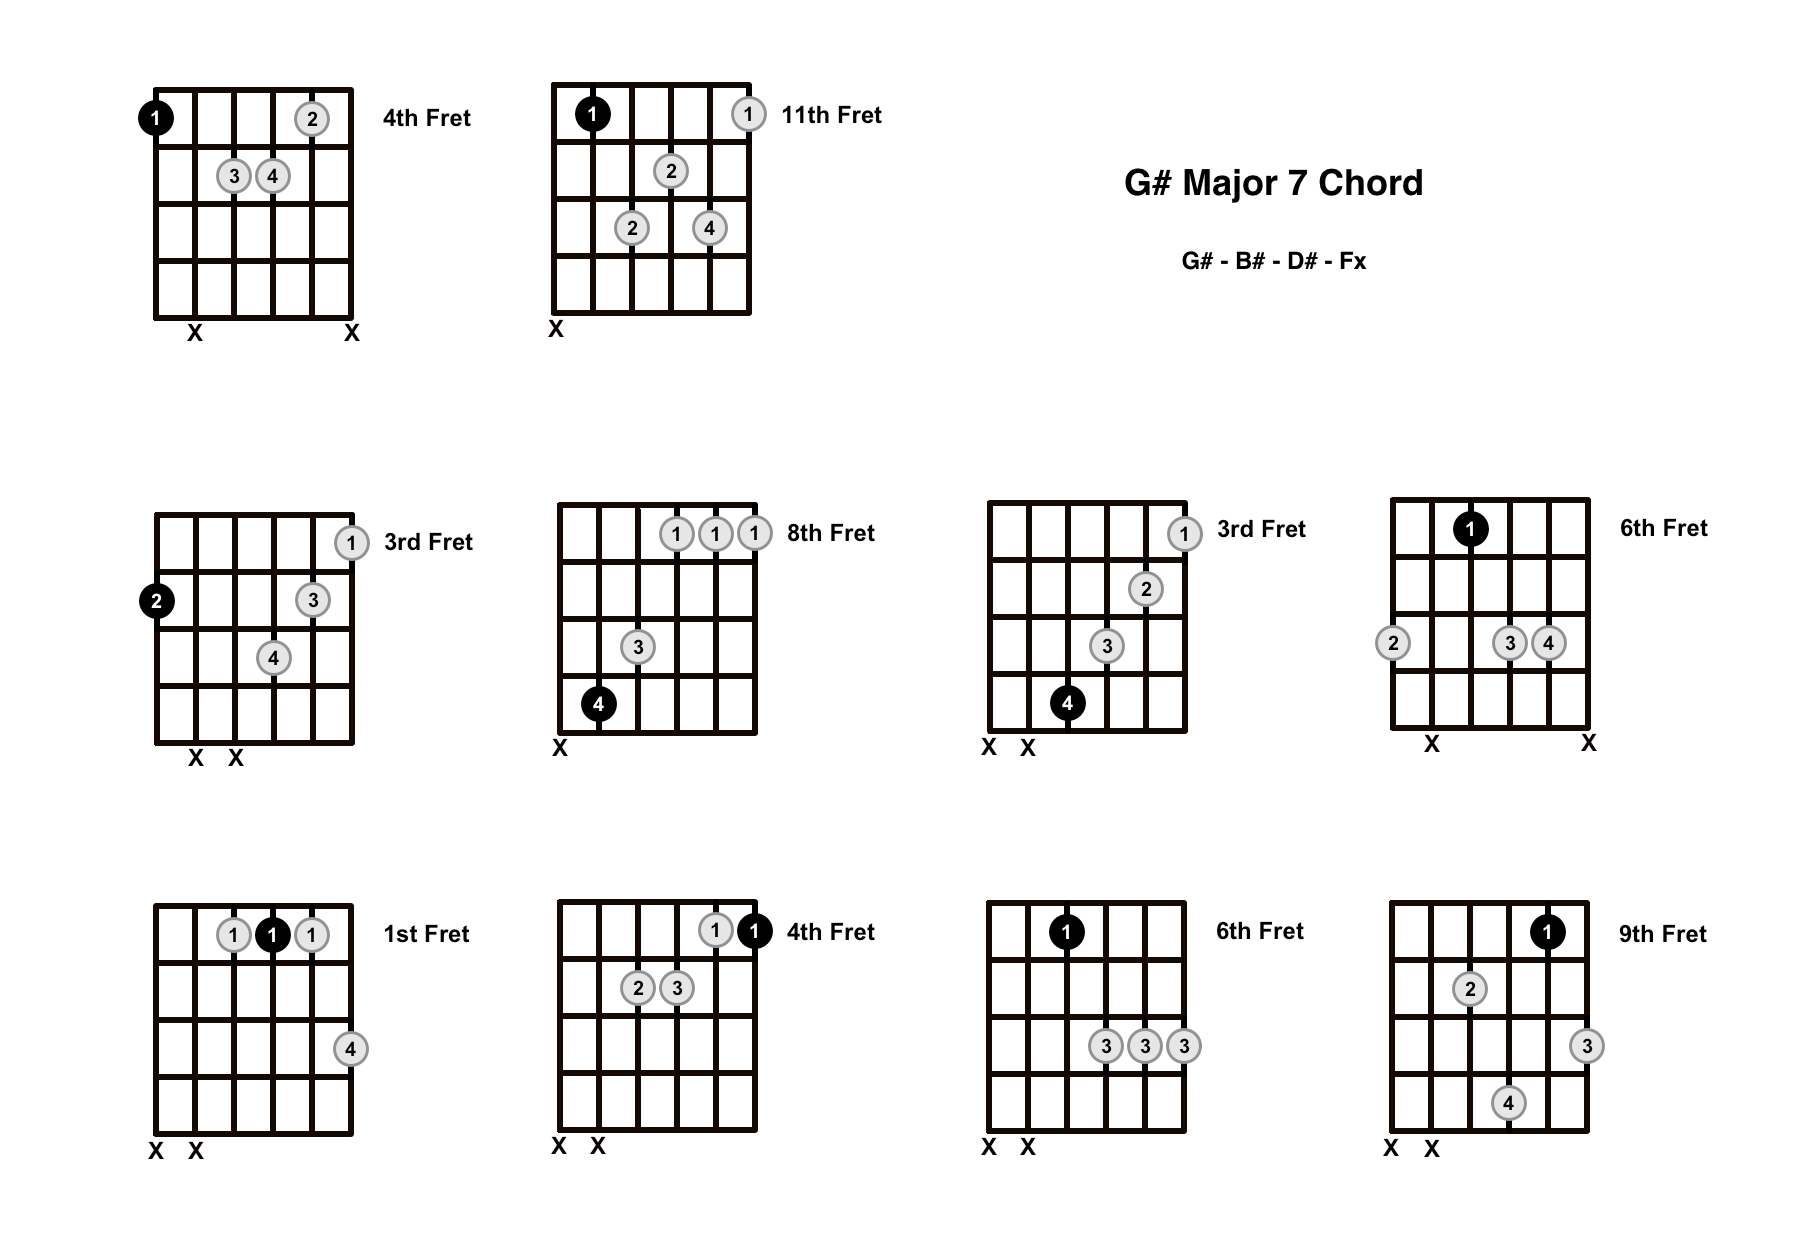 G Sharp Major 7 Chord On The Guitar (G# Maj 7) – Diagrams, Finger Positions and Theory